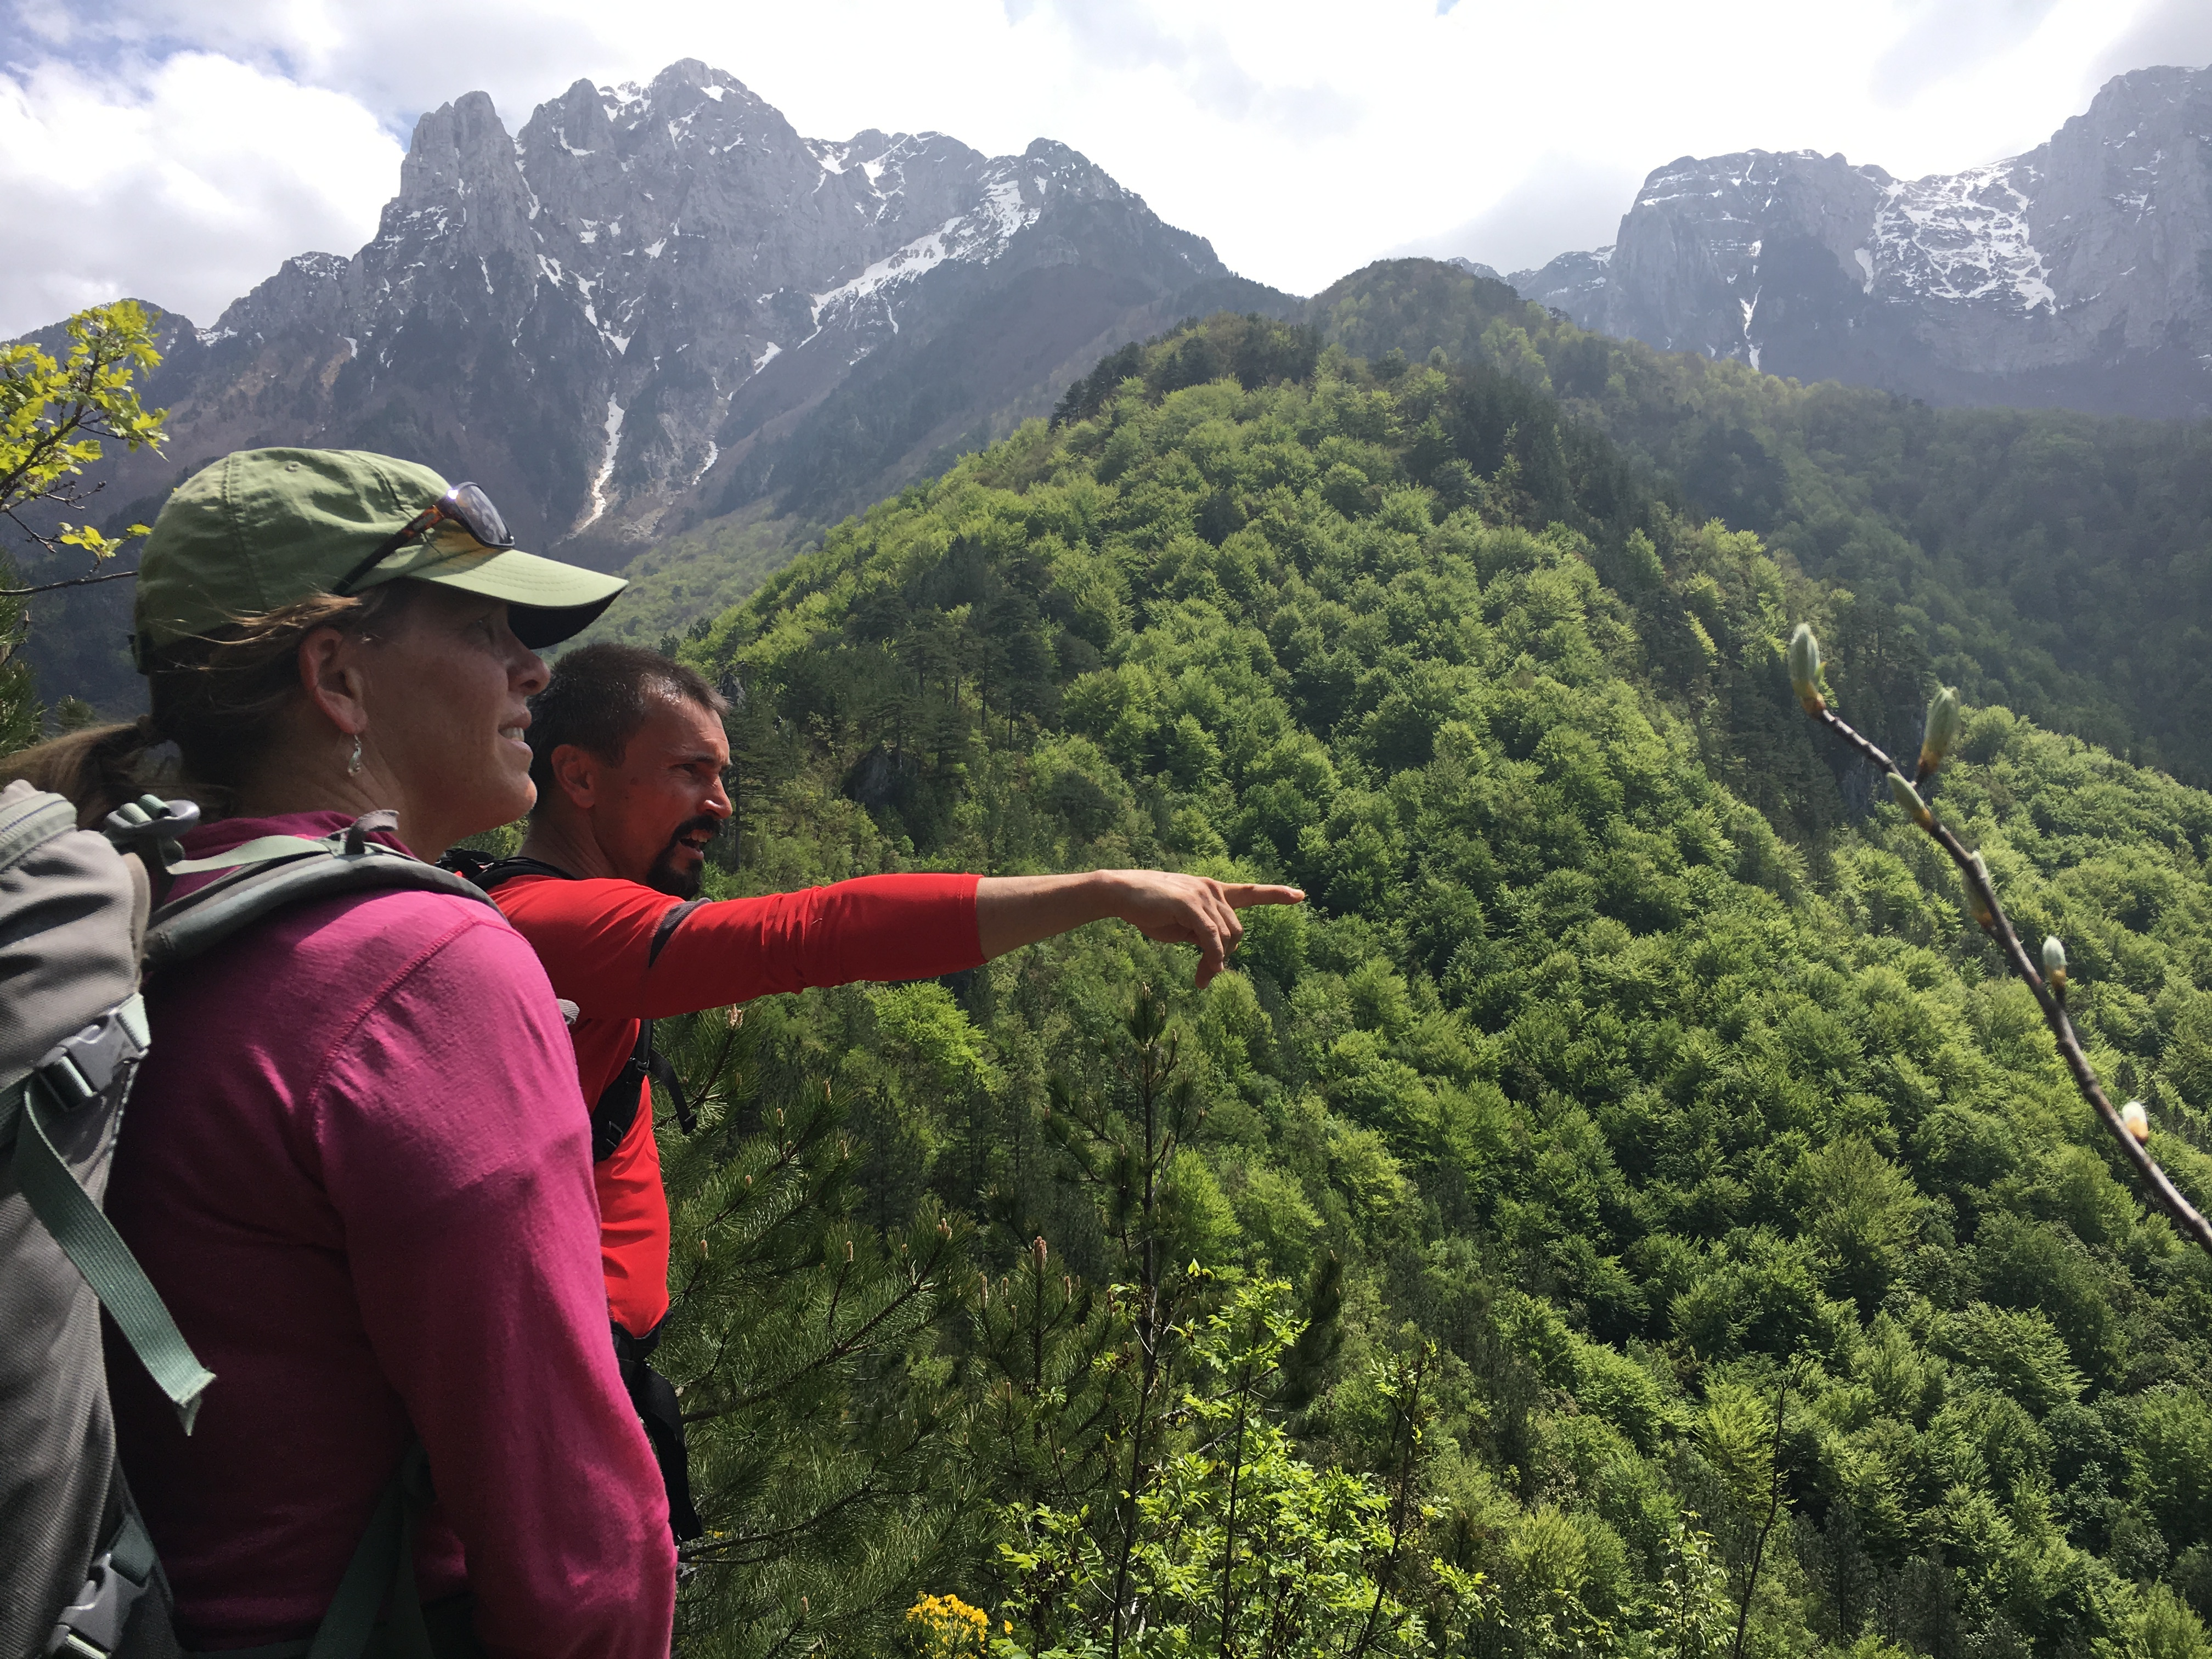 Kenan Muftic, technical advisor for Terra Dinarica, points out features of the trail and landscape to Cindy Ebbert during her recent work in Bosnia and Herzegovina.